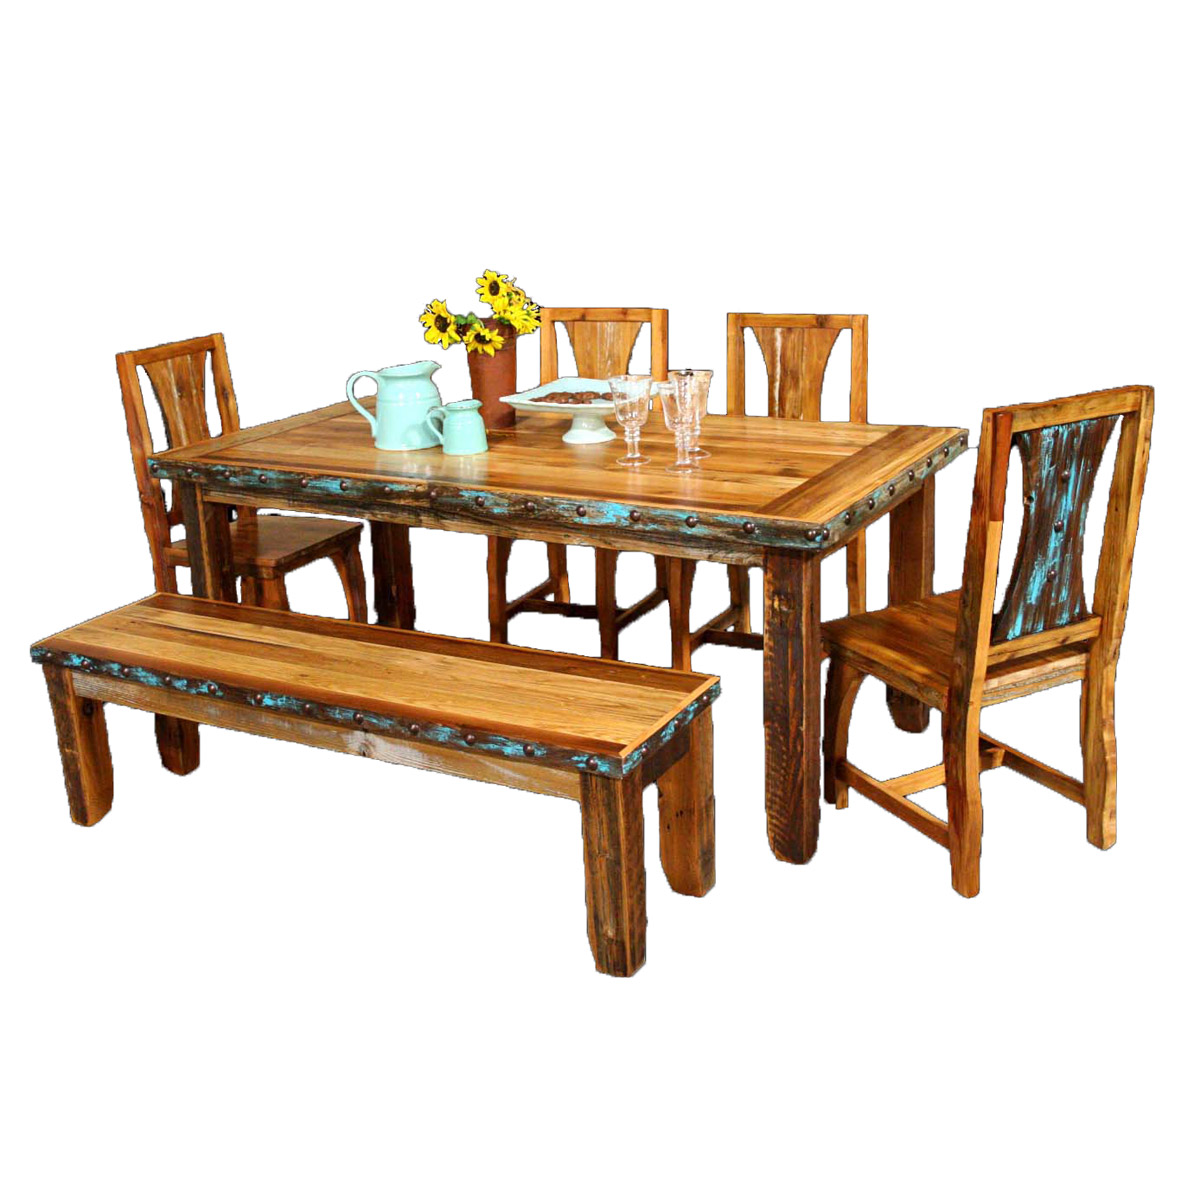 Western Chairs Barnwood Azul Table Western Chairs With Bench And Nailheads 6